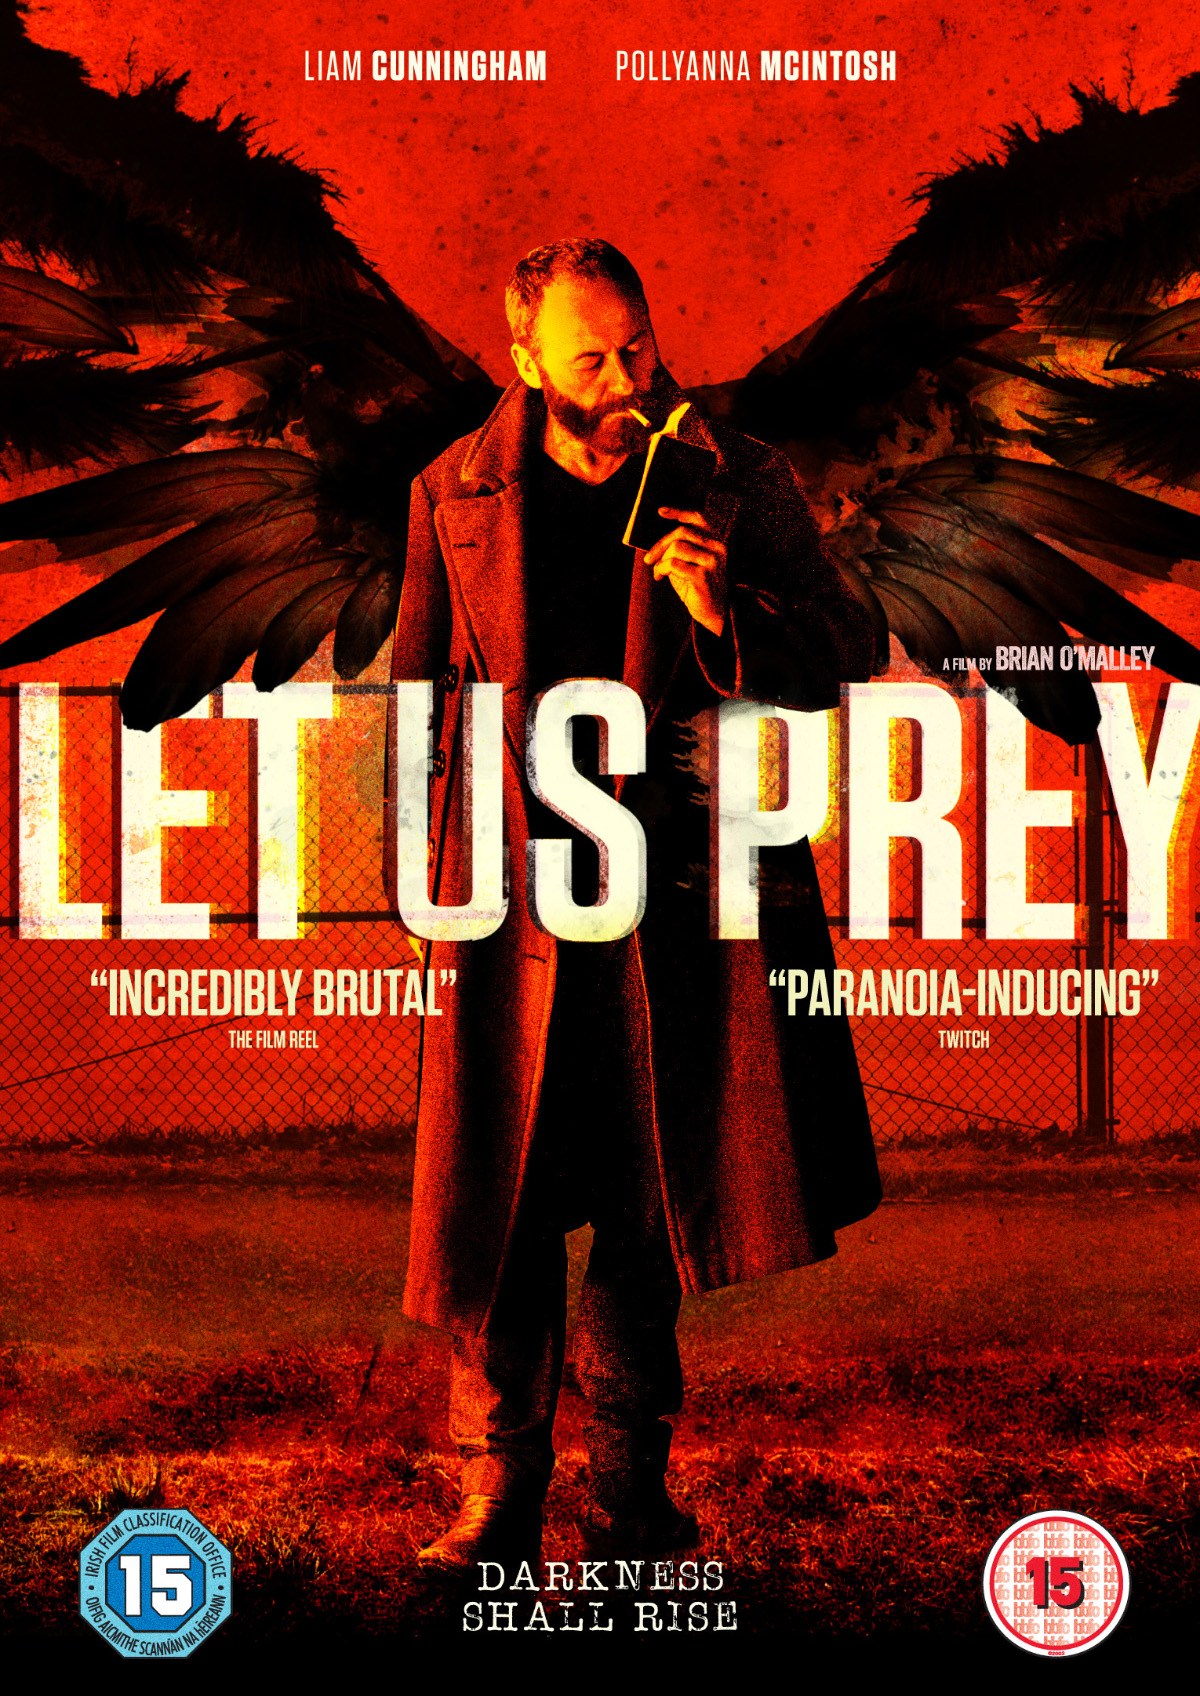 Let Us Prey DVD review: Liam Cunningham is the Devil